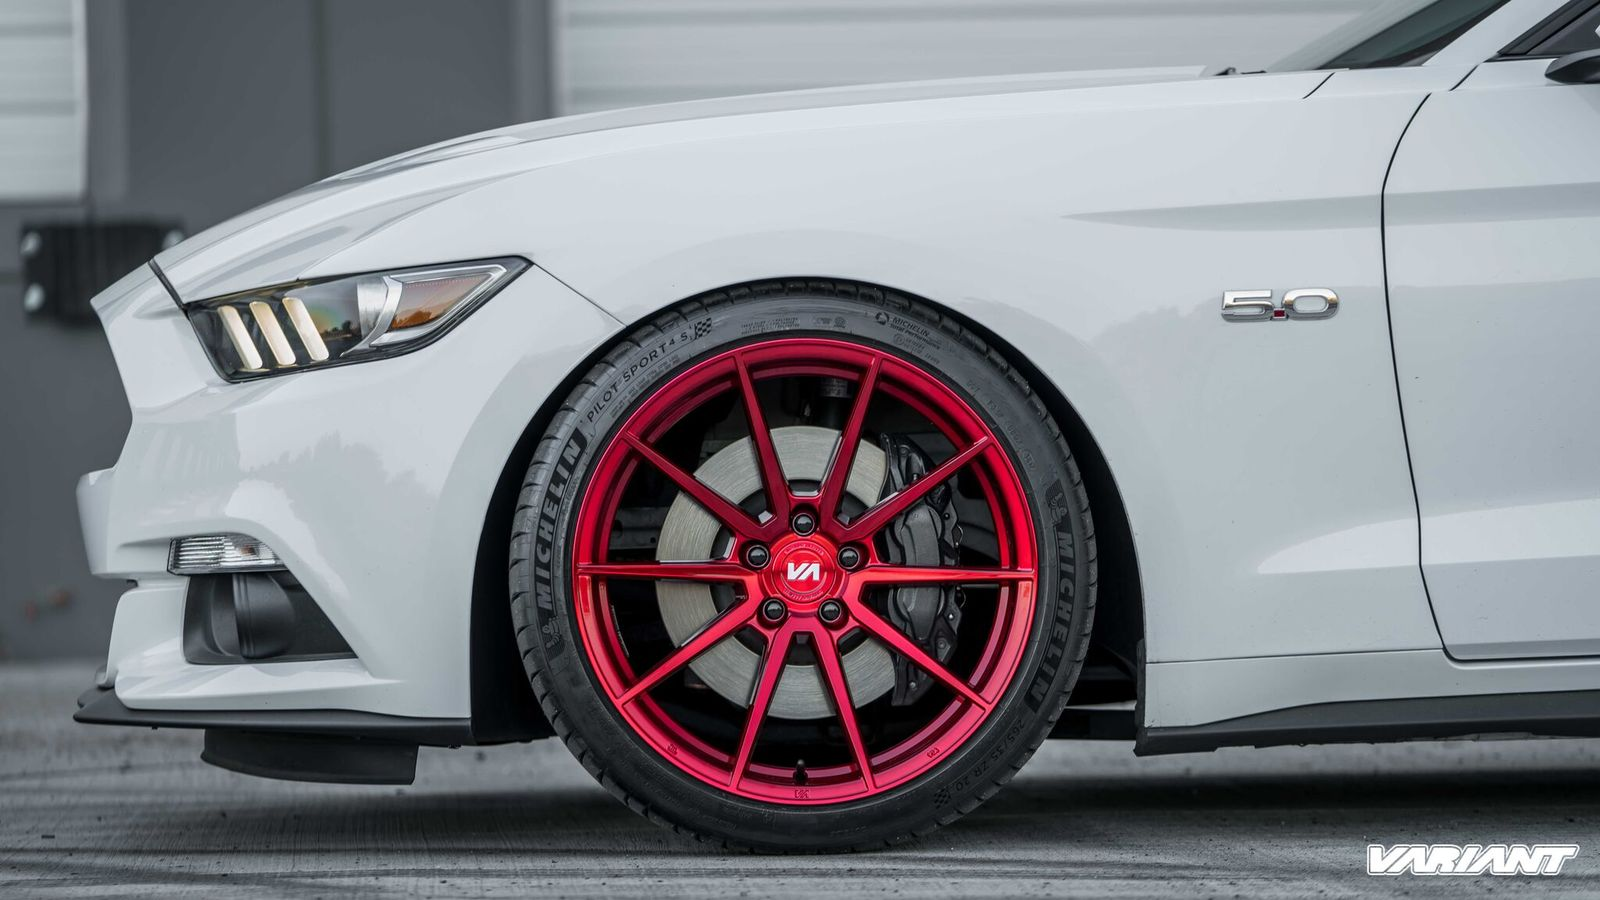 oxford-white-ford-mustang-gt-s550-variant-argon-red-concave-wheels.jpg